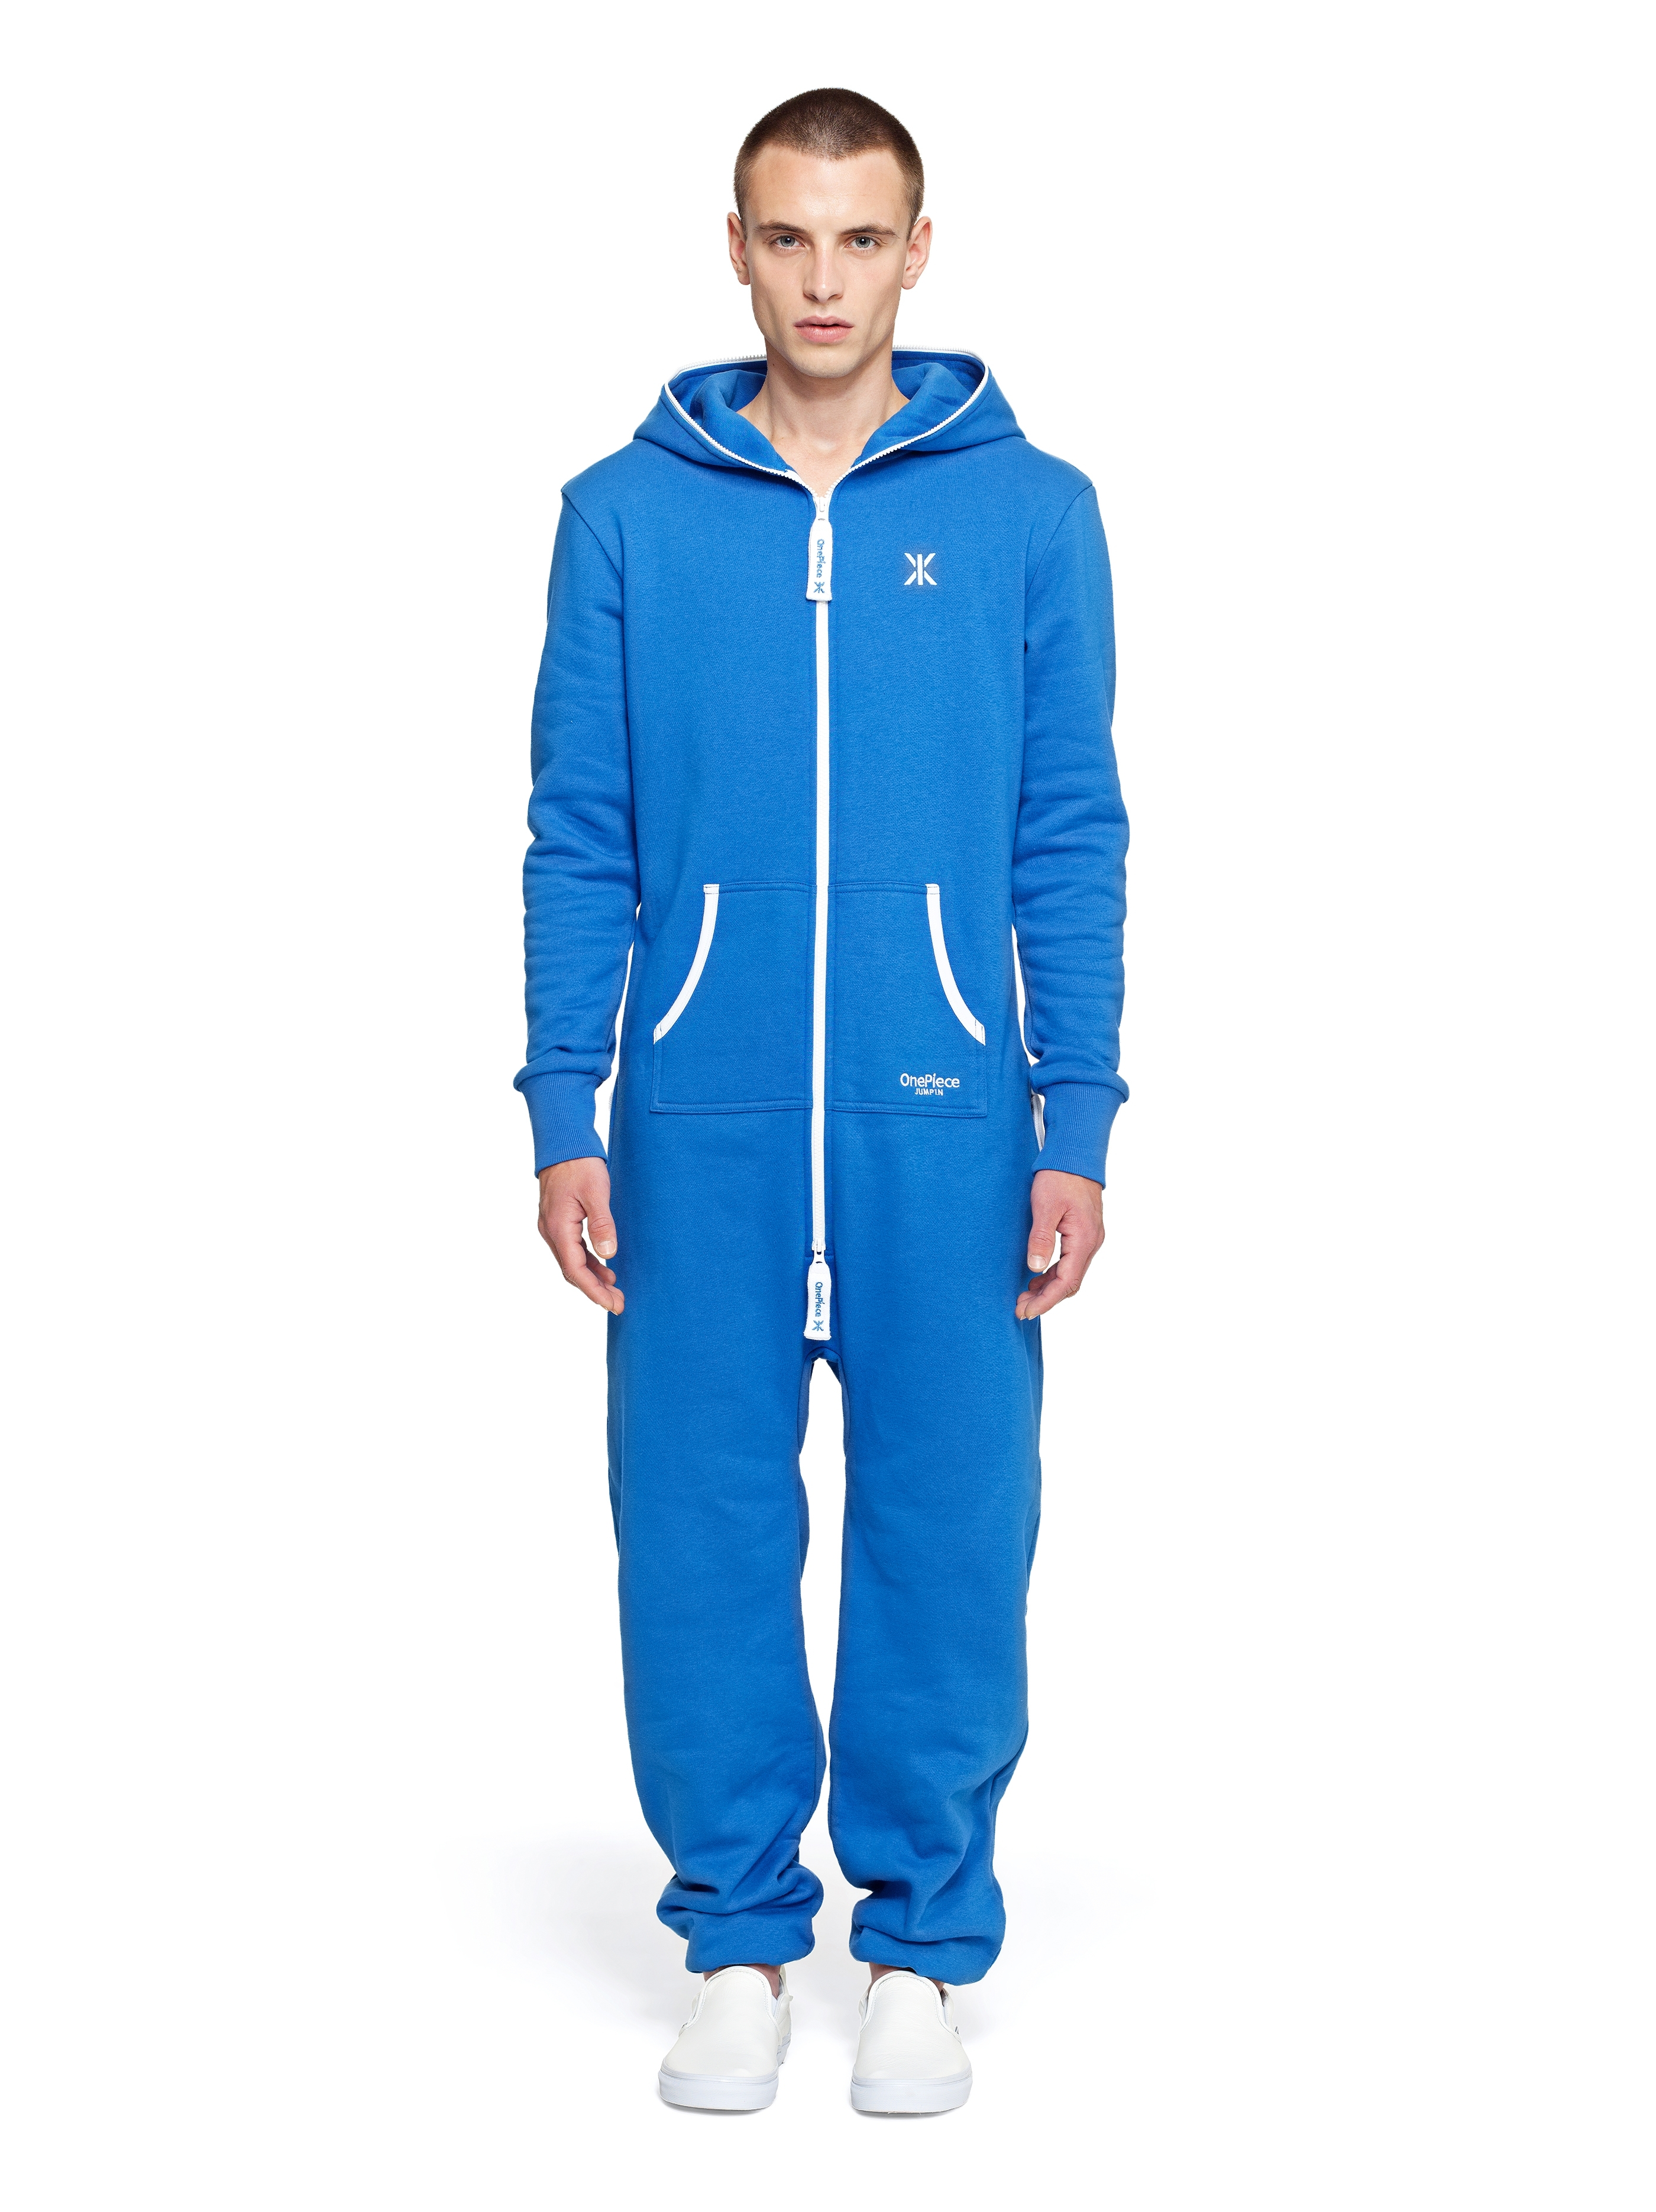 The onesie has become a popular choice for casual wear and people wear them not just at home but while running errands as well. If you are looking for a stylish and comfortable onsie then you should Men's Blue Onesie Pajama Playsuit offered by skylinewears.